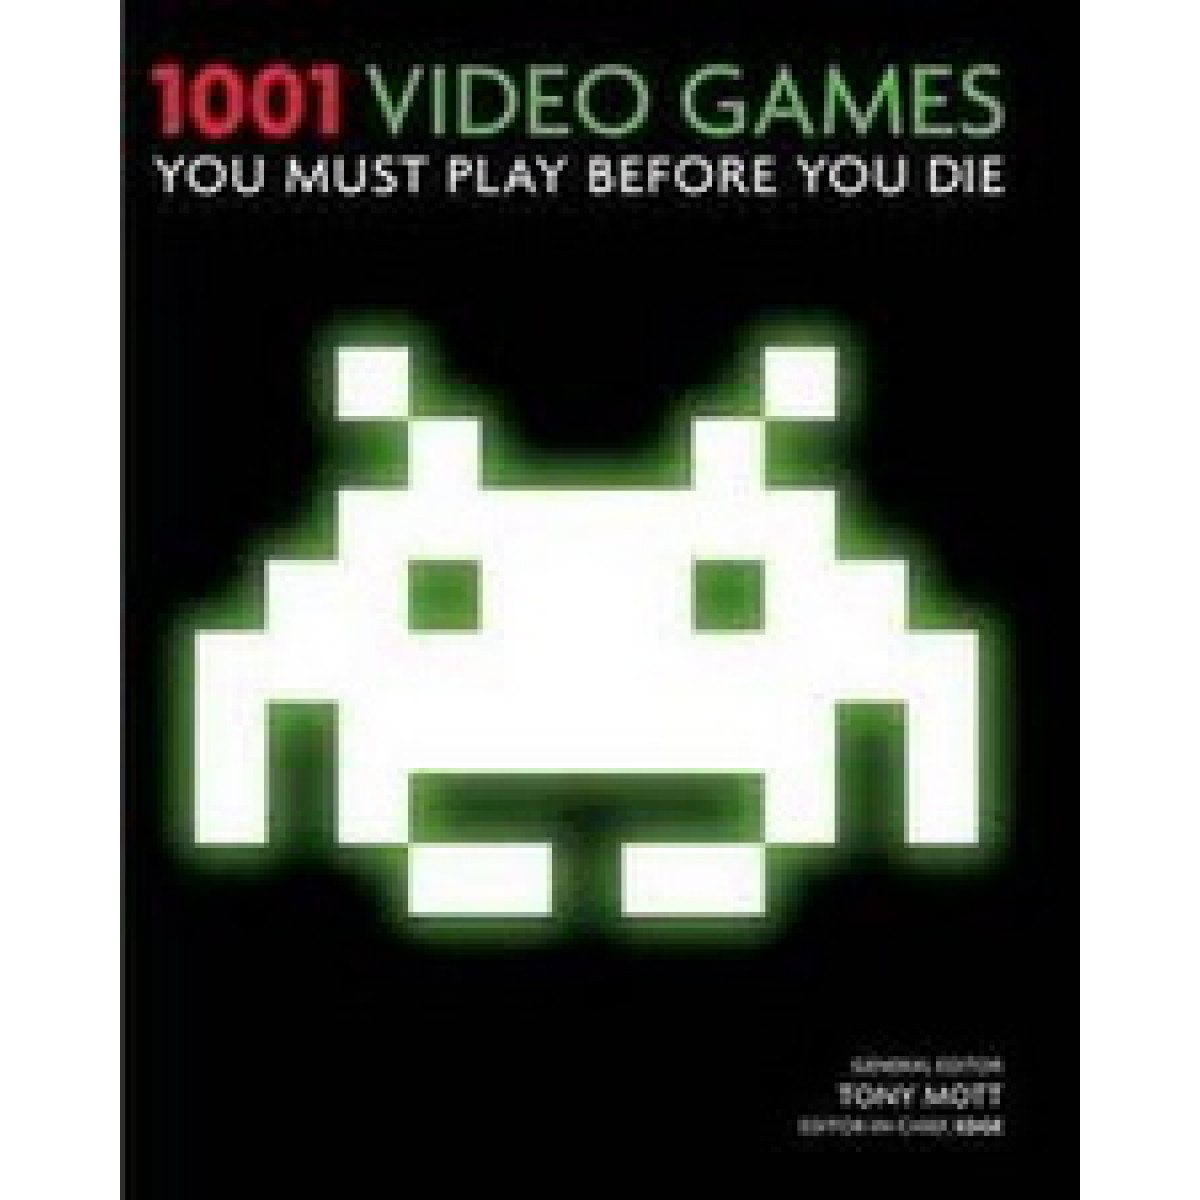 1001 VIDEOGAMES You Must Play Before You Die